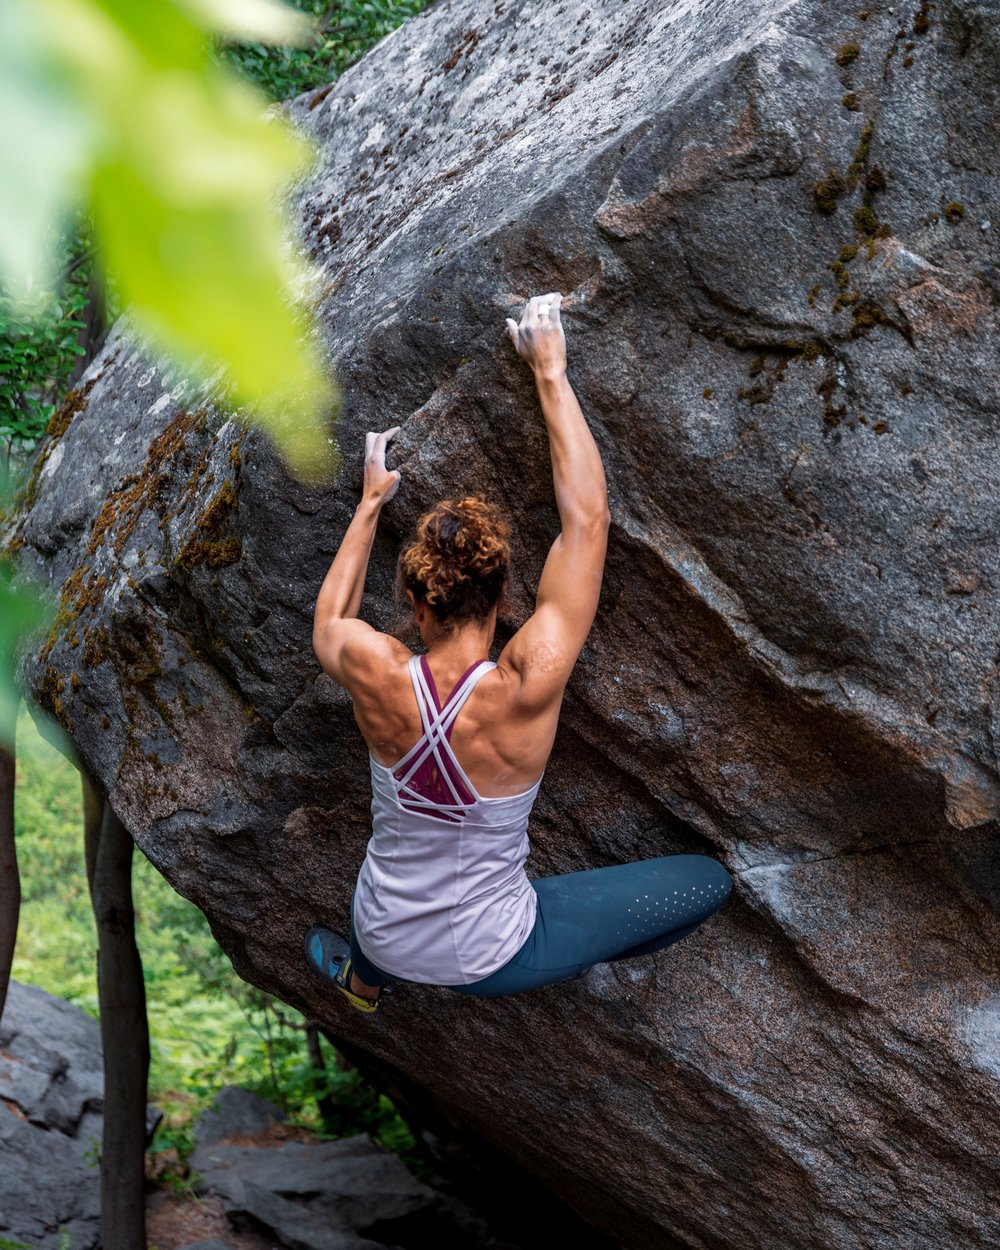 African-American Neuroscientist and climbing activist  Melise Edwards  frequently writes about privilege, racism and sexism in the climbing community on her popular  Instagram  account. Her outspokenness makes her a target for racist and sexist comments from fellow climbers.  Photo courtesy of    Meghan Young   .